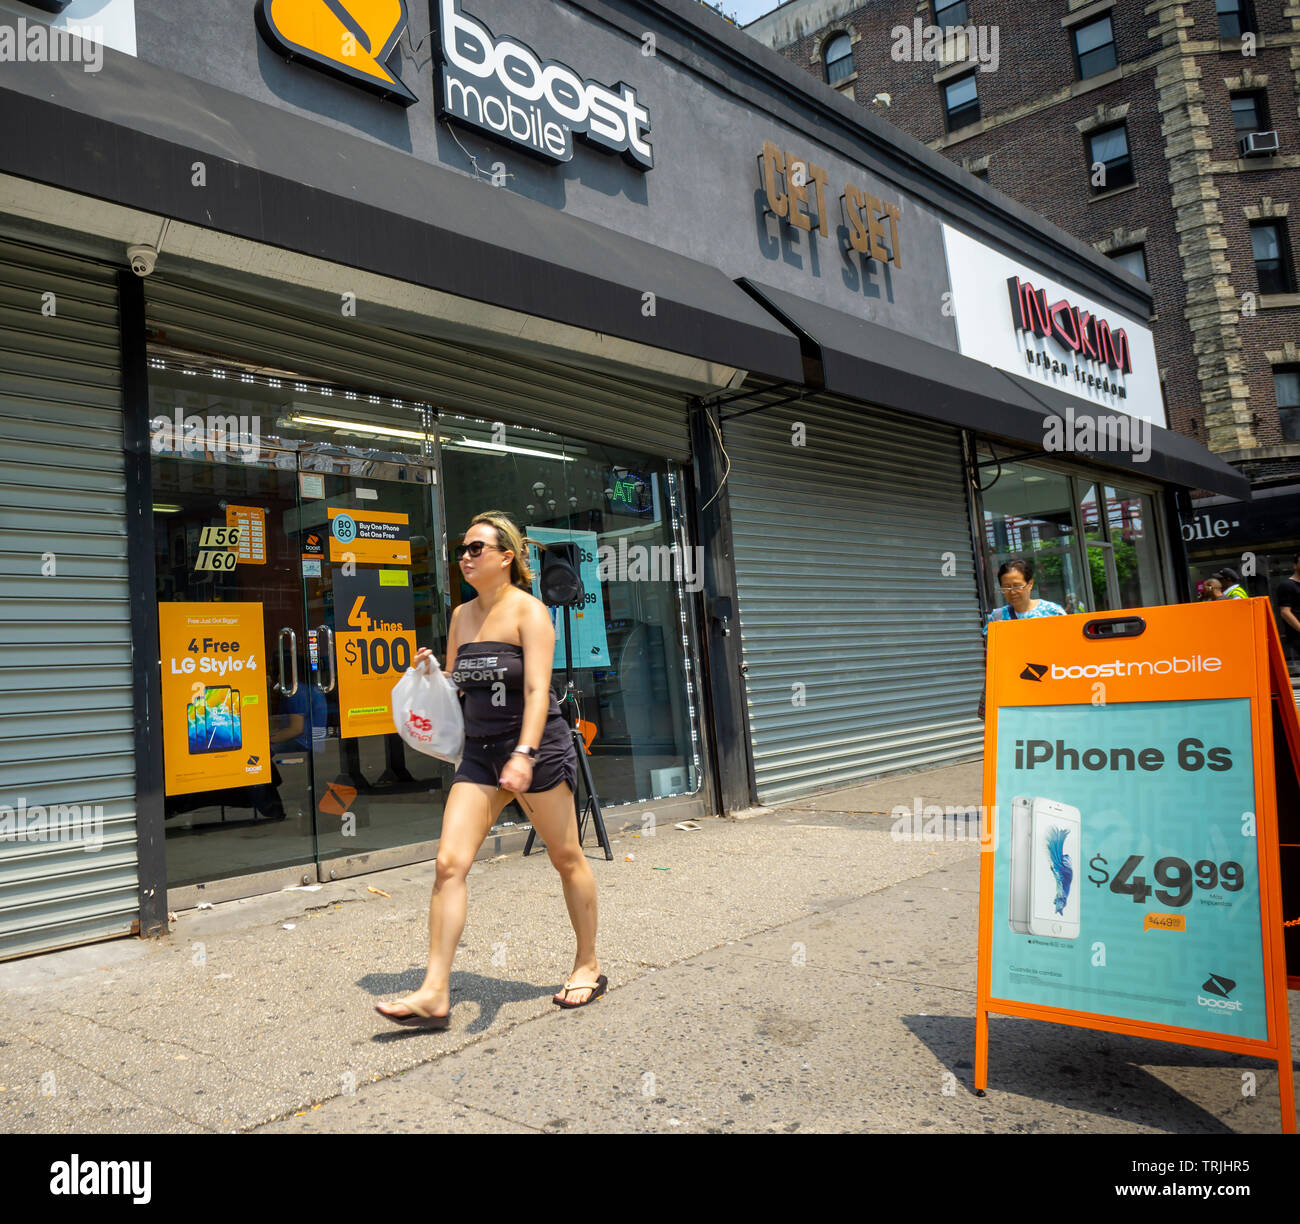 A Boost Mobile store in the Lower East Side neighborhood in New York on Sunday, June 2, 2019. Amazon is reported to be interested in purchasing Sprint's Boost Mobile prepaid wireless business due to concerns related to the T-Mobile and Sprint proposed merger. (© Richard B. Levine) - Stock Image